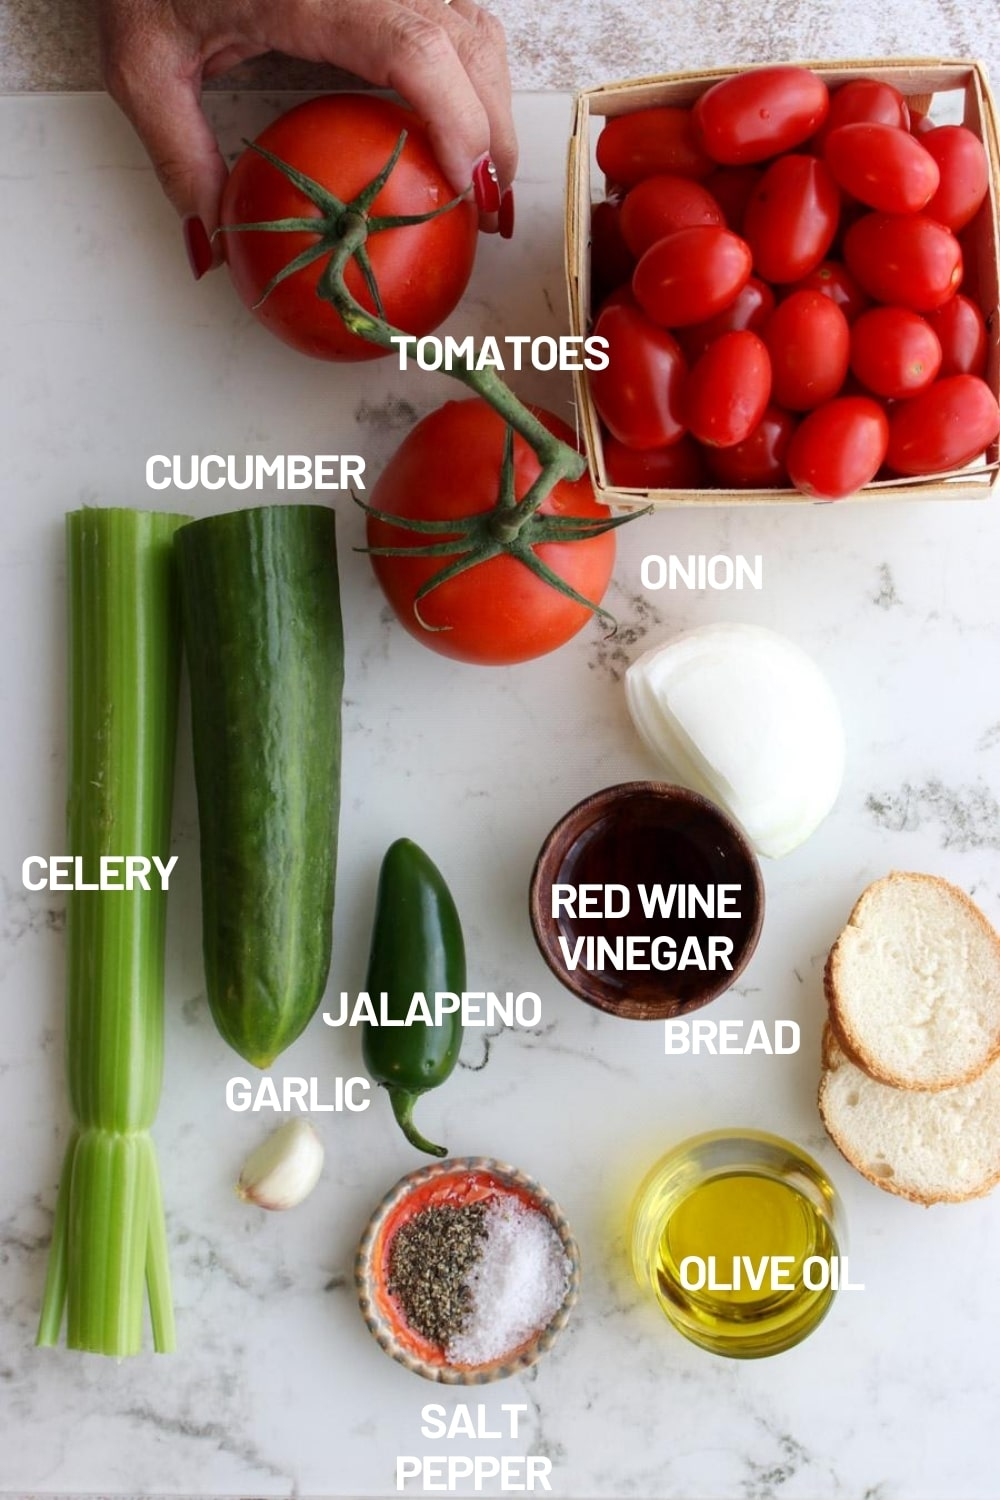 Photo of all of the gazpacho ingredients